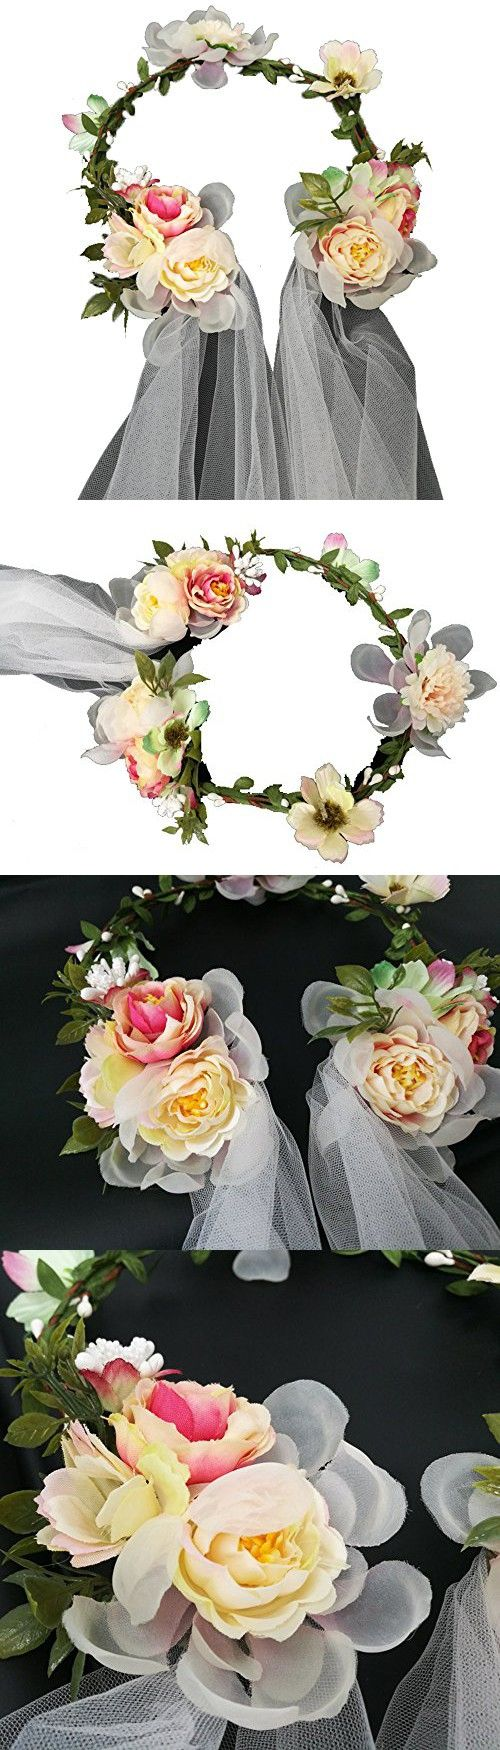 Newly arrived Rattan Flower Vine Crown Bridal Wedding Veil Flower Headpiece Wreath Veil Headband (Camellia Flower)